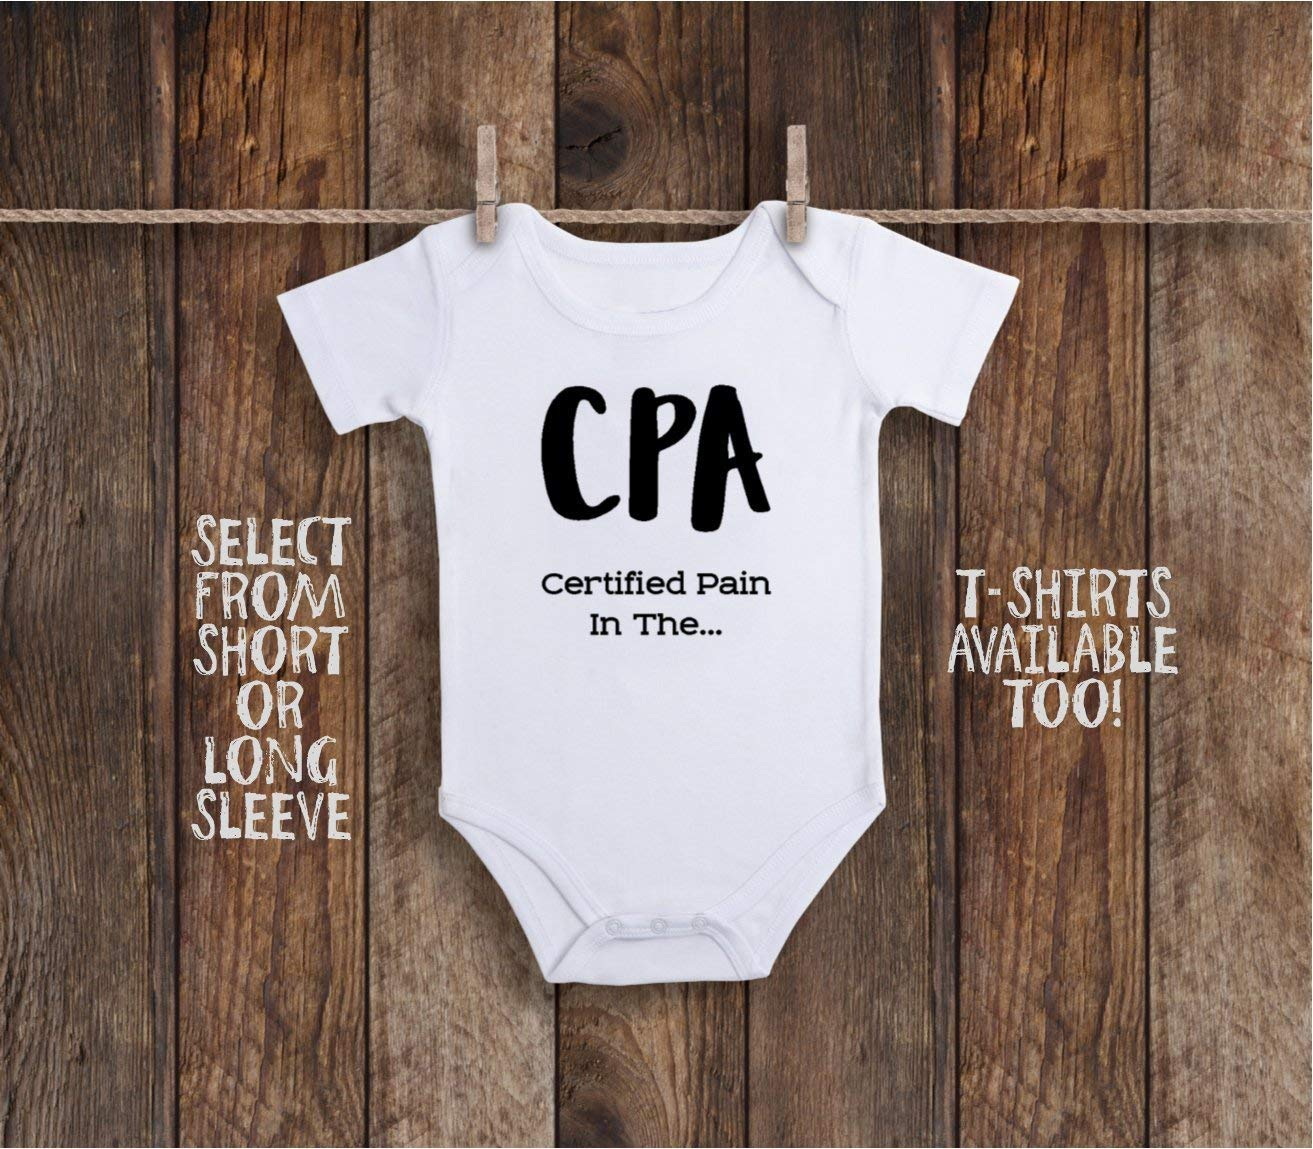 CPA Certified Pain In The Funny Baby Bodysuit for Public Accountant, Accounting, Tax Deduction